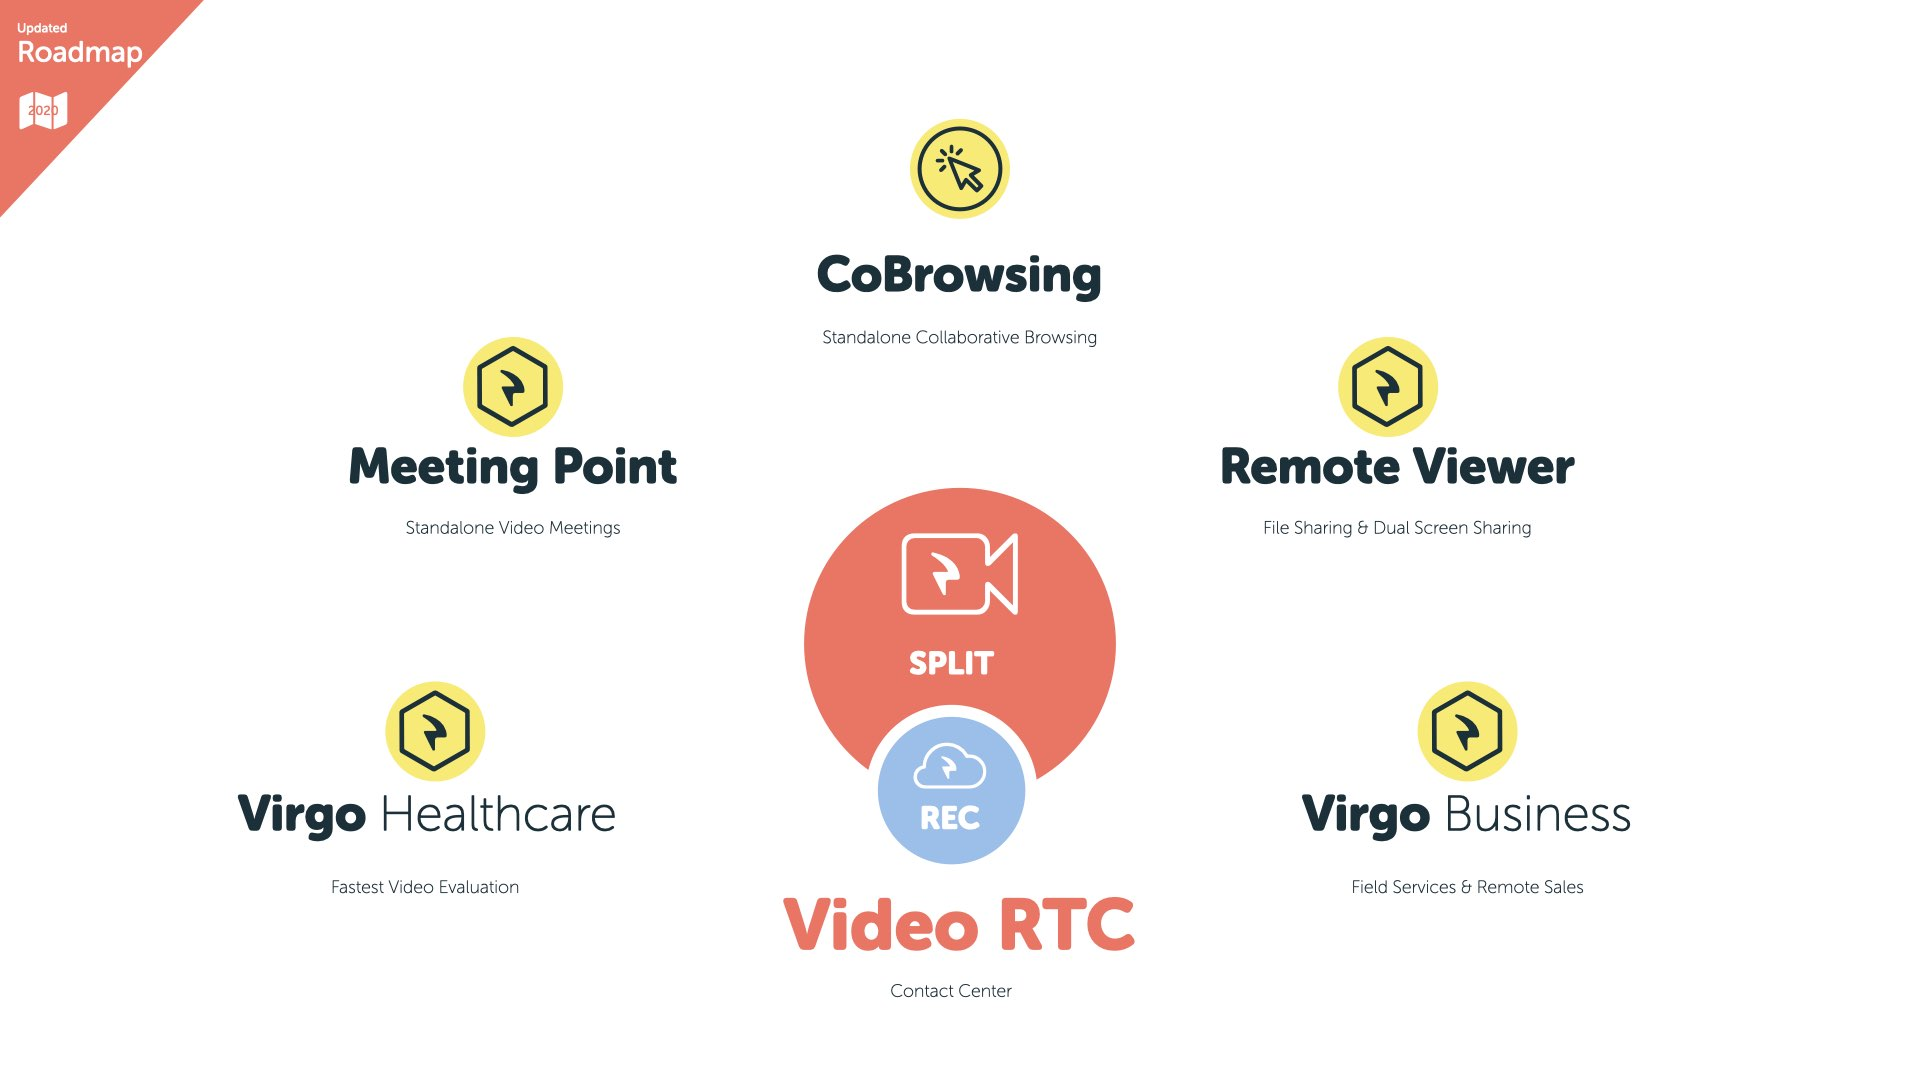 Video RTC Solutions Roadmap 2020